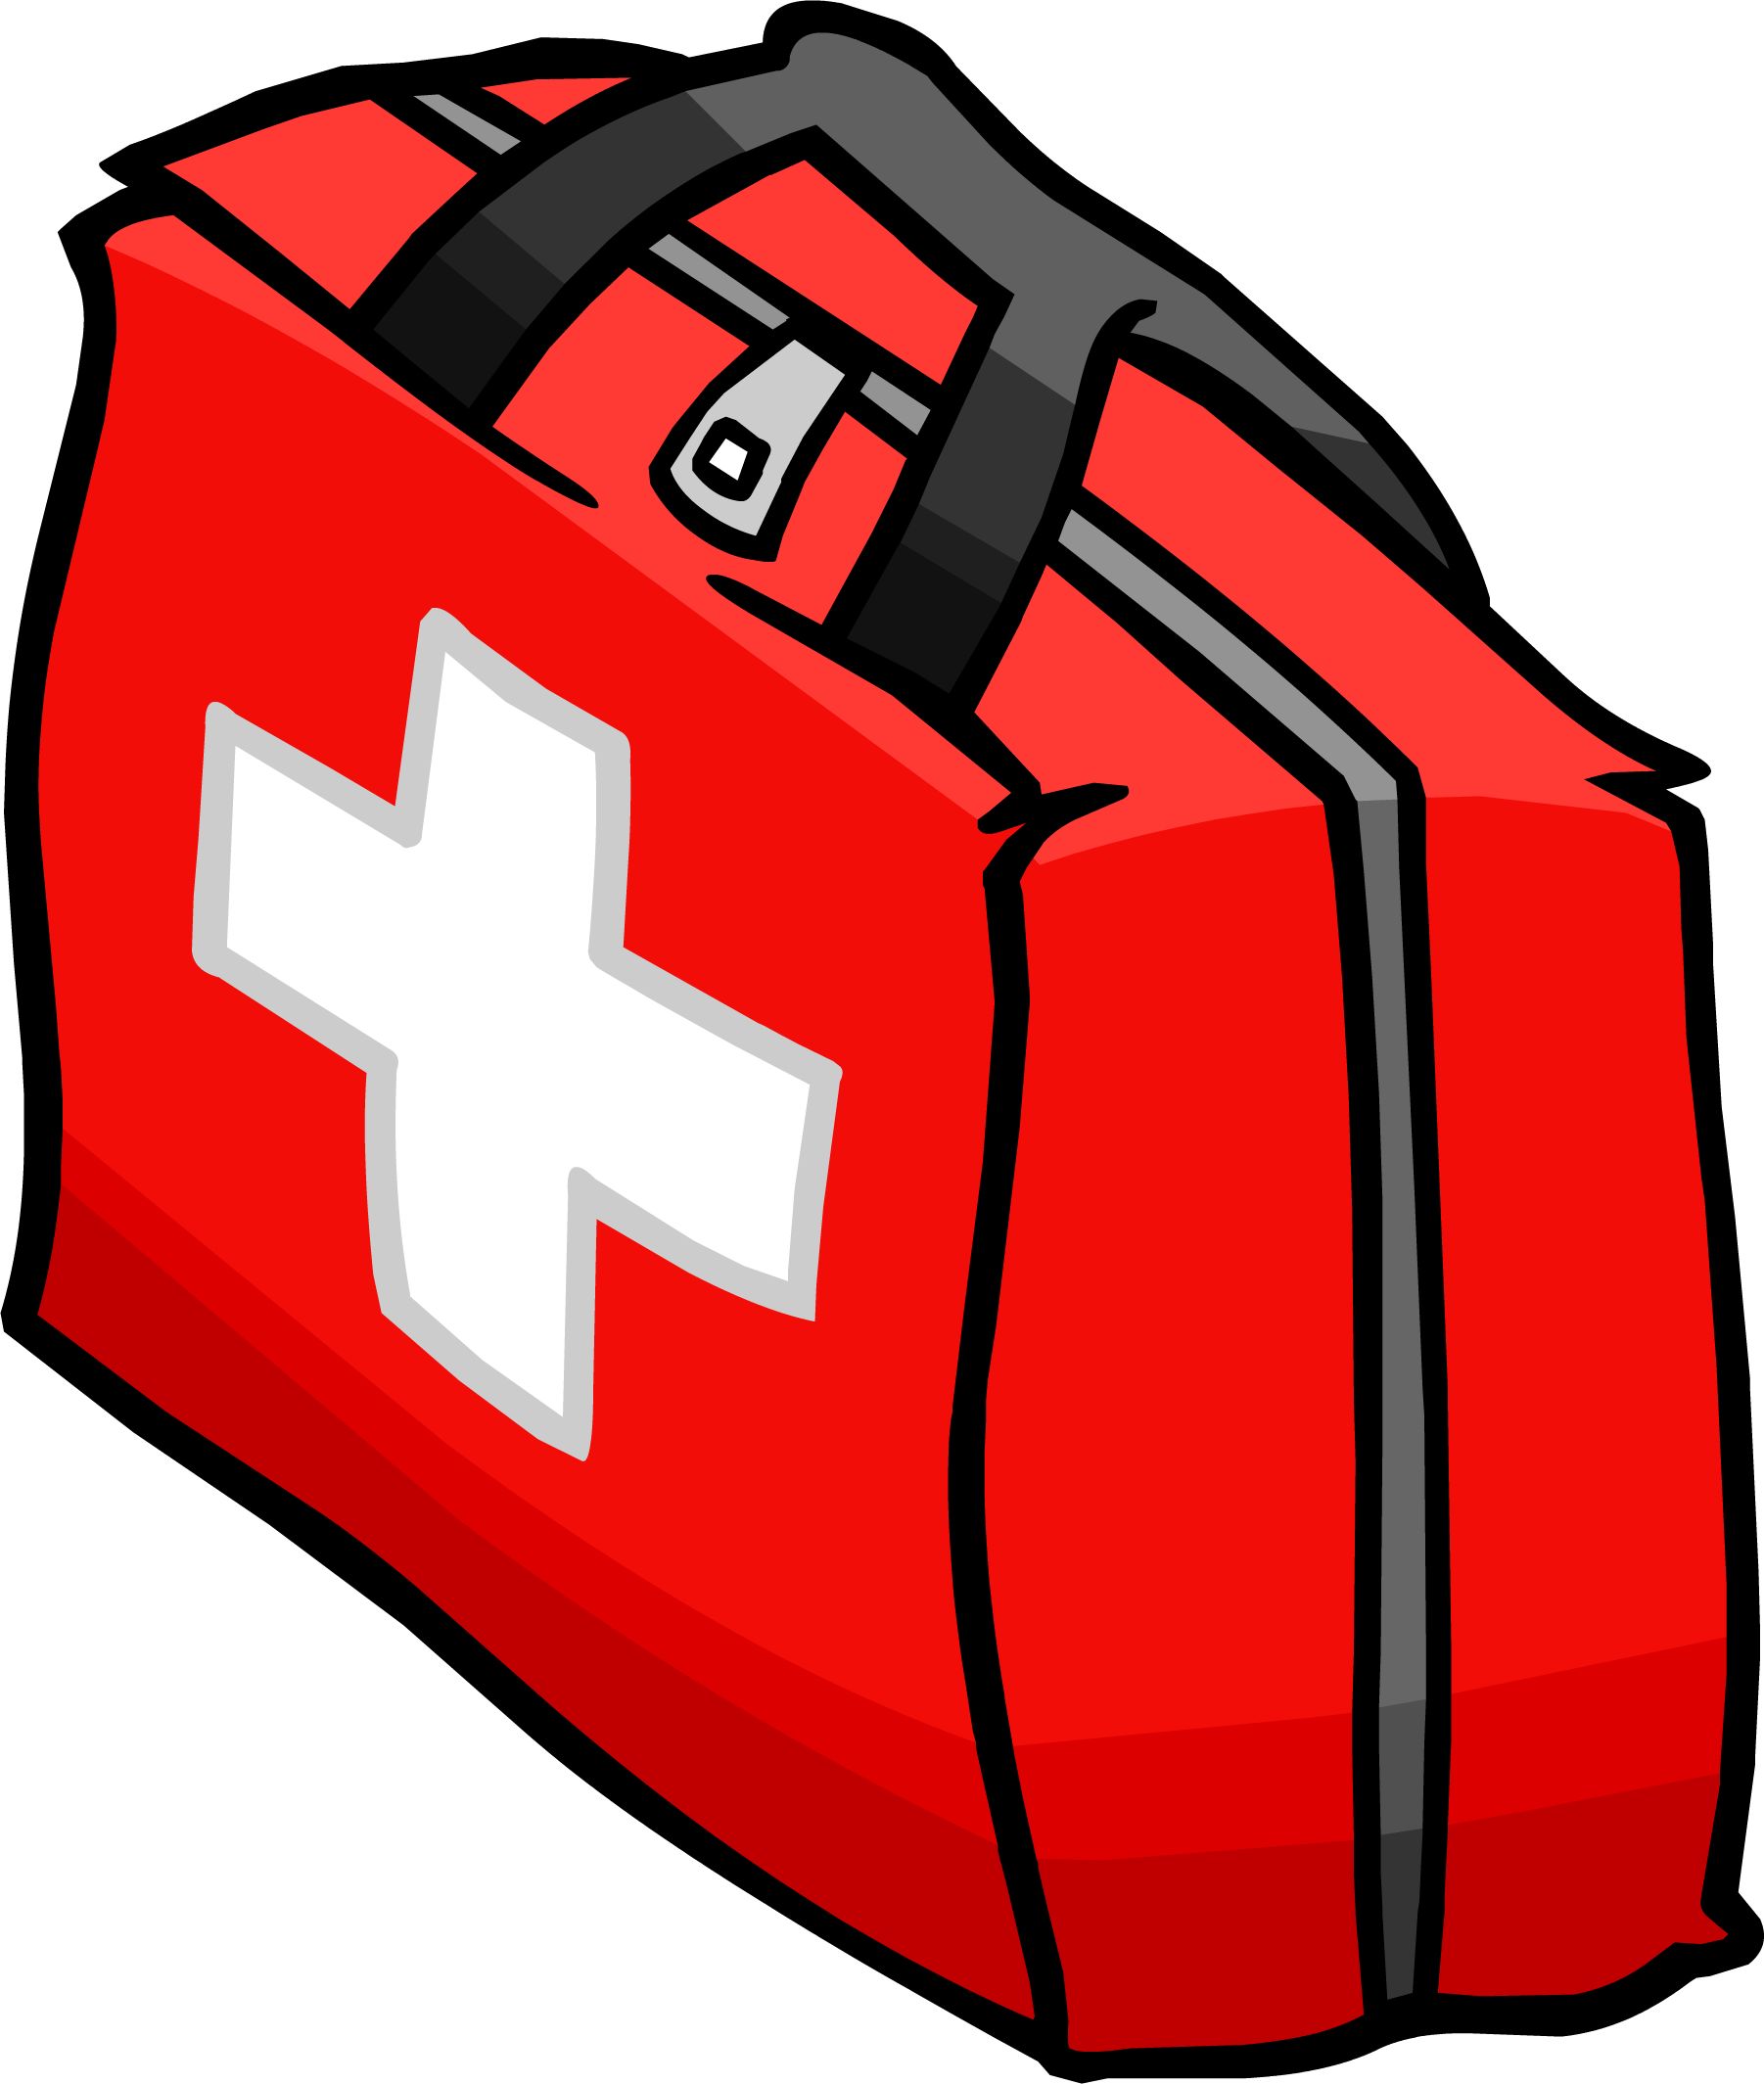 First aid clip art. Briefcase clipart cartoon clip art freeuse stock